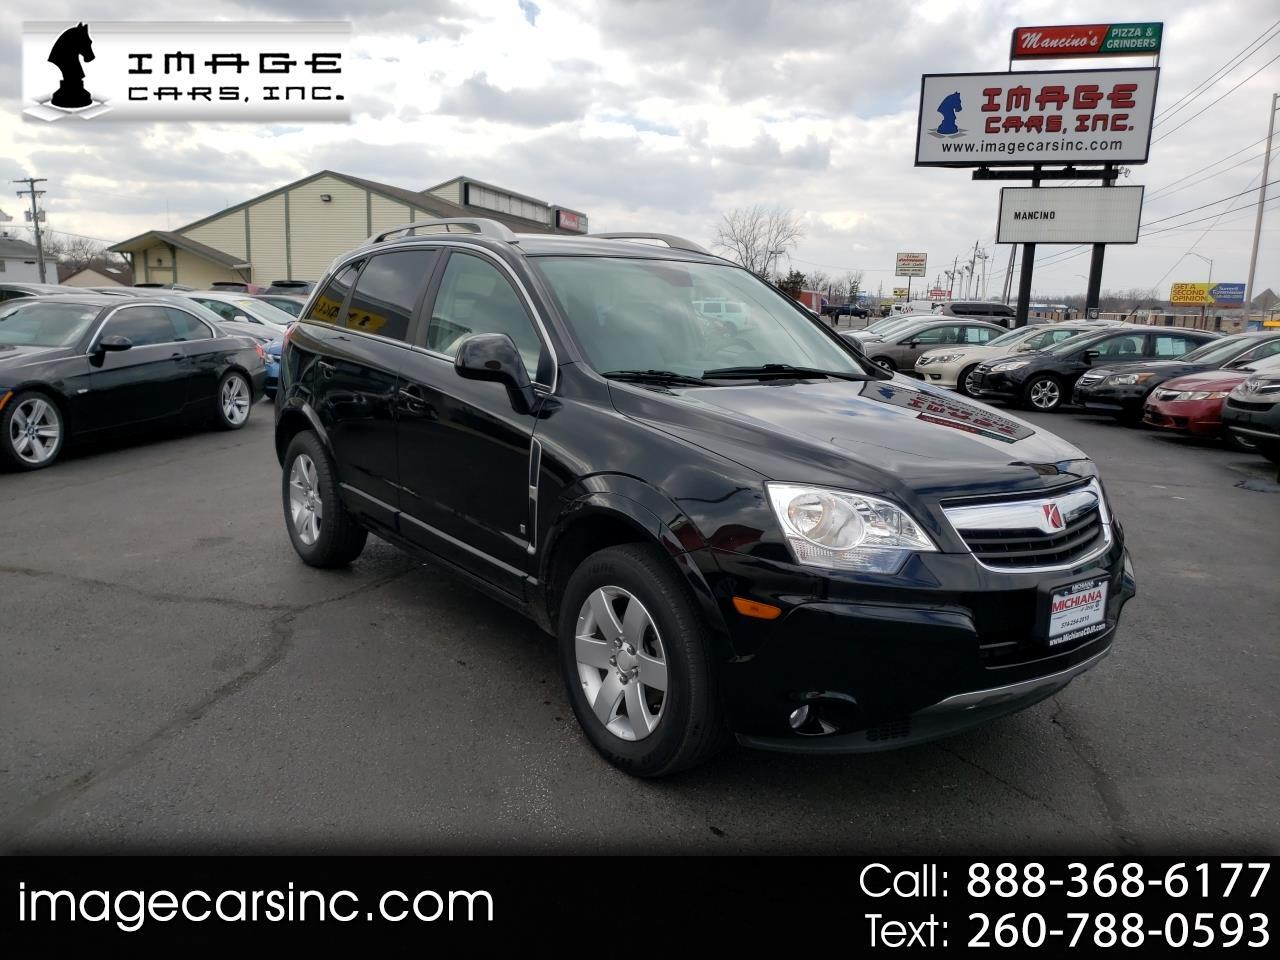 2008 Saturn VUE 4dr FWD Auto V6